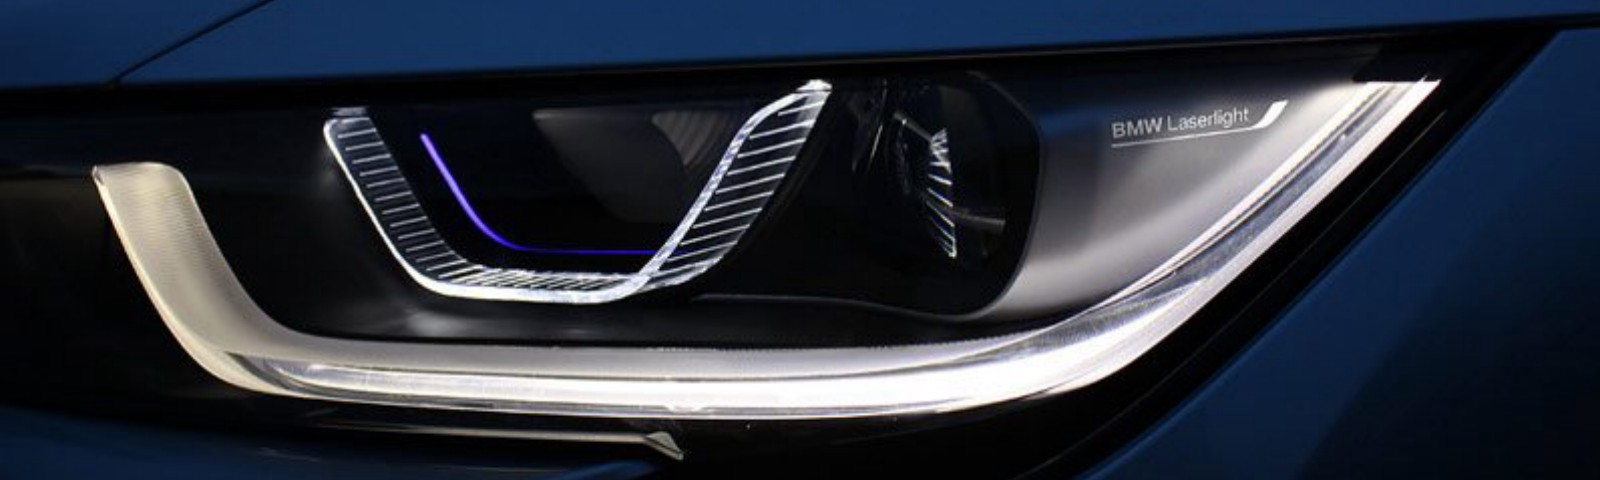 BMW Laserlight Technology